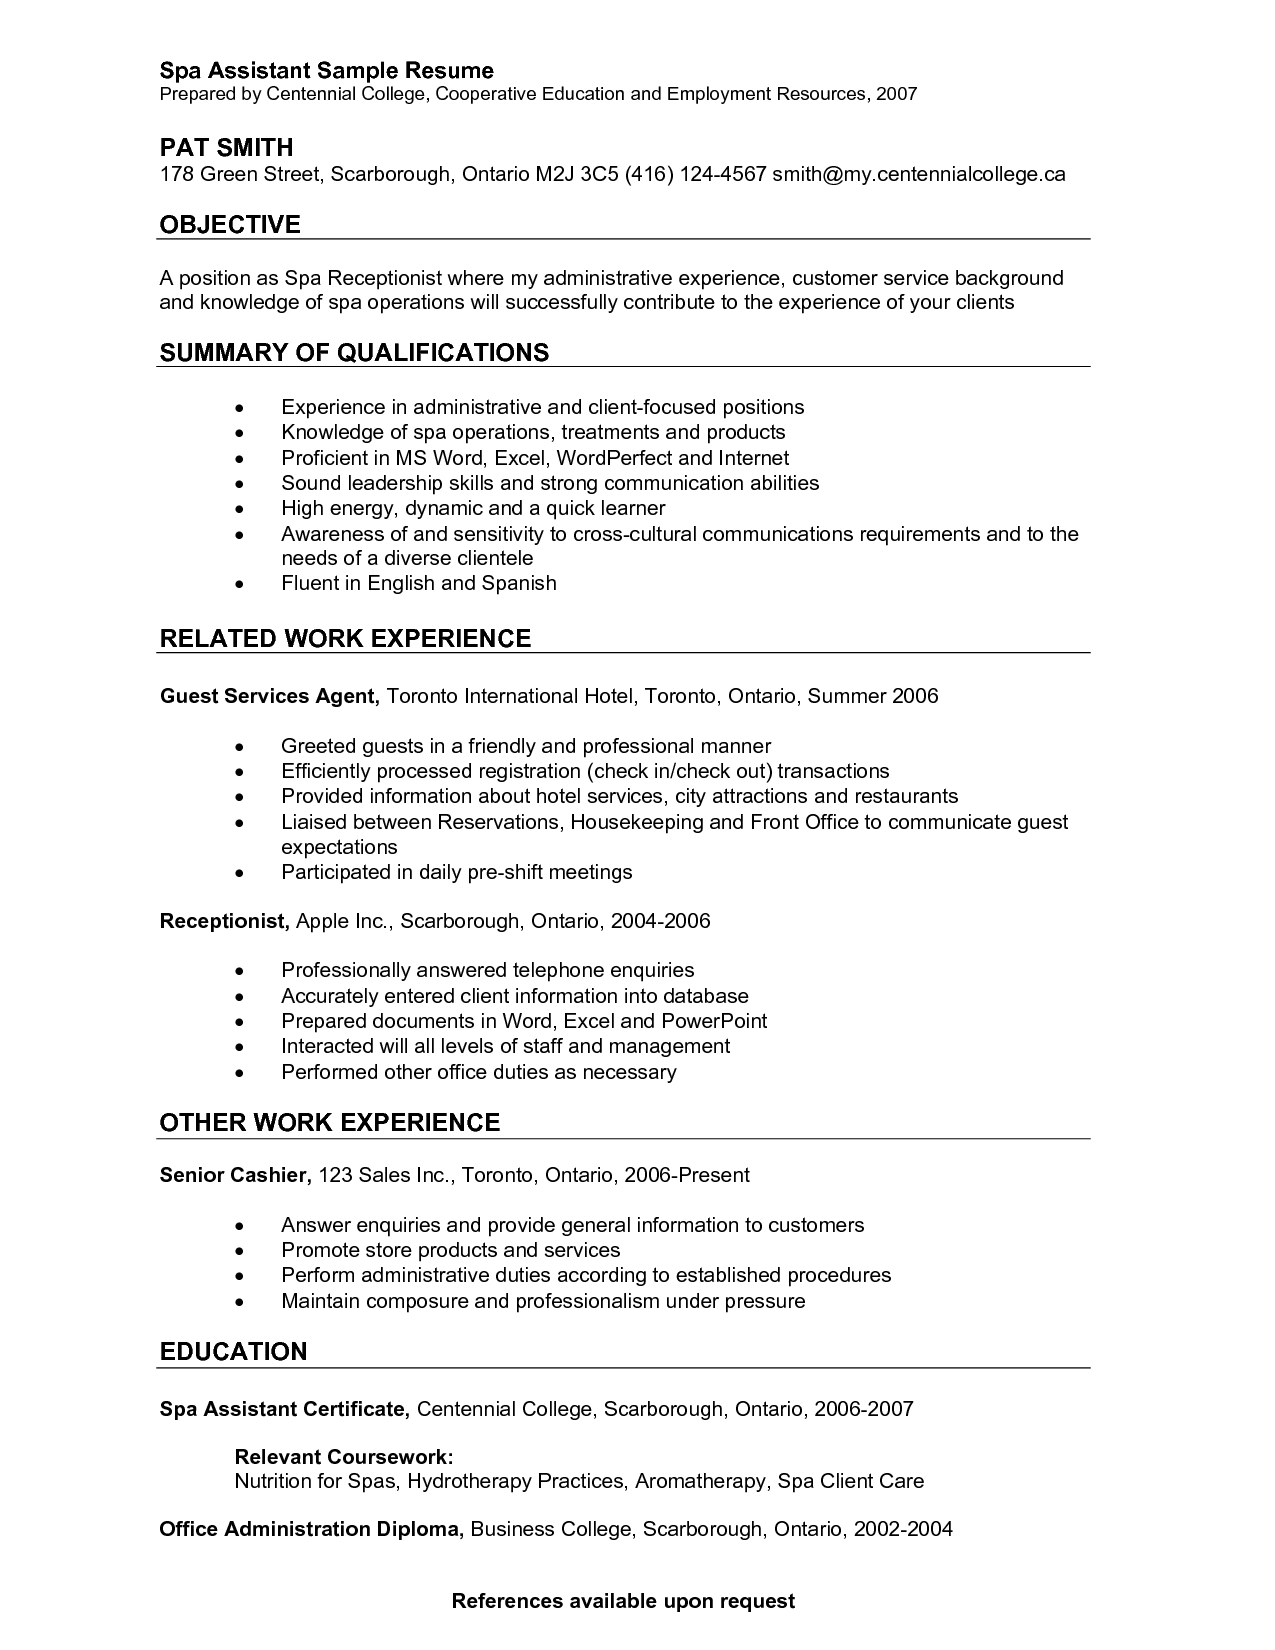 Resume For Medical Receptionist Medical Receptionist Resume Objective Samples  Resume  Pinterest